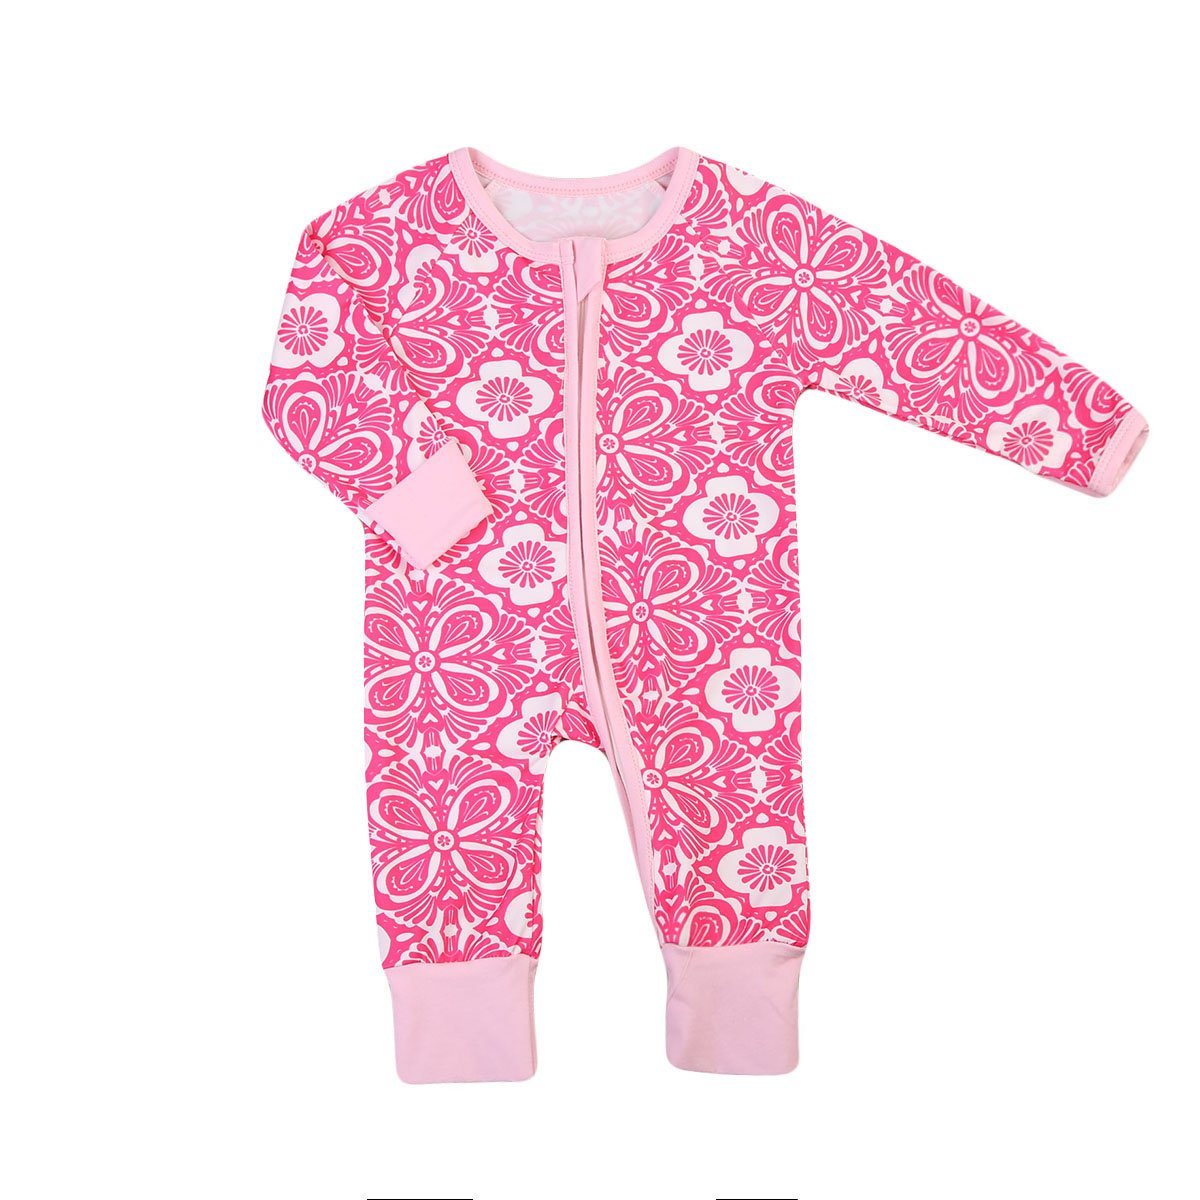 d38a027101 Amazon.com  ITFABS Newborn Baby Girl Pajamas Floral Sleeper Cute Flower  Print Coveralls Clothes  Clothing